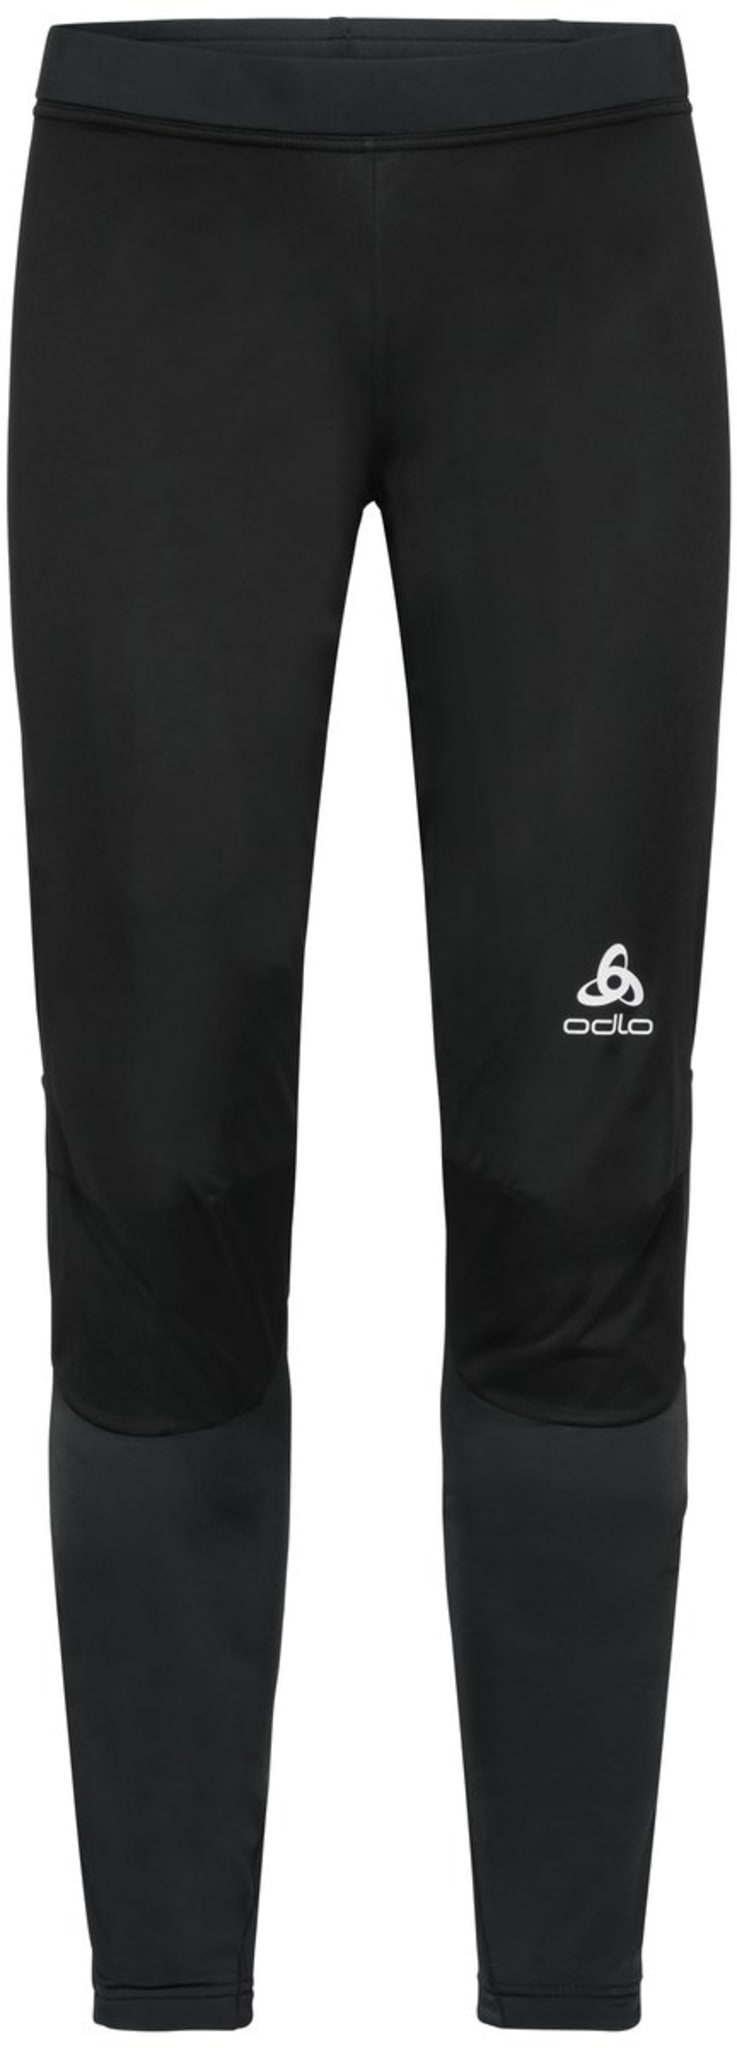 Zeroweight Tights M